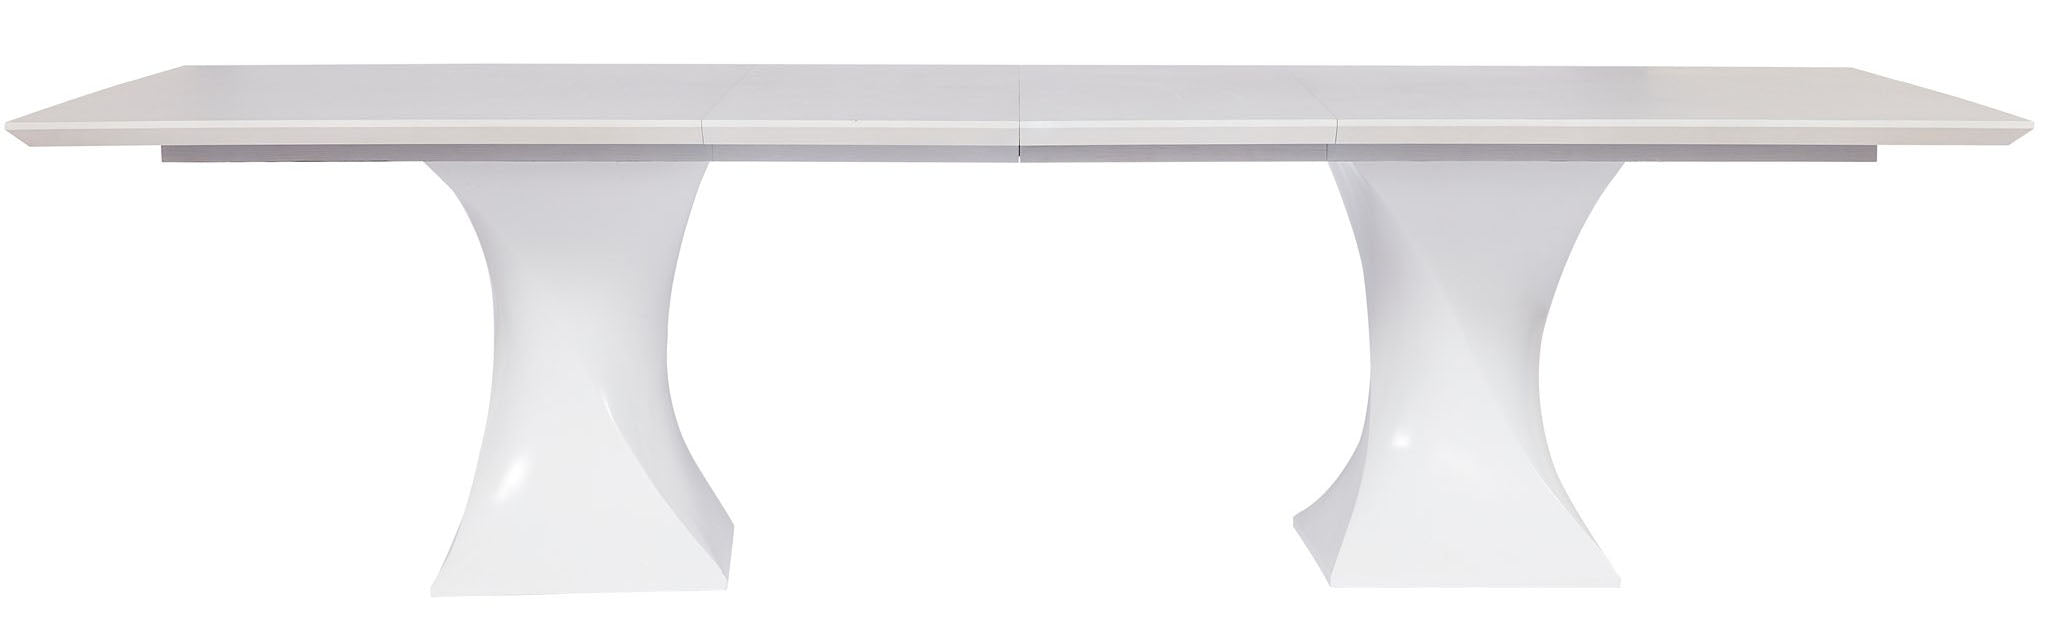 Miranda Kerr Brisbane Pedestal Dining Table - MJM Furniture